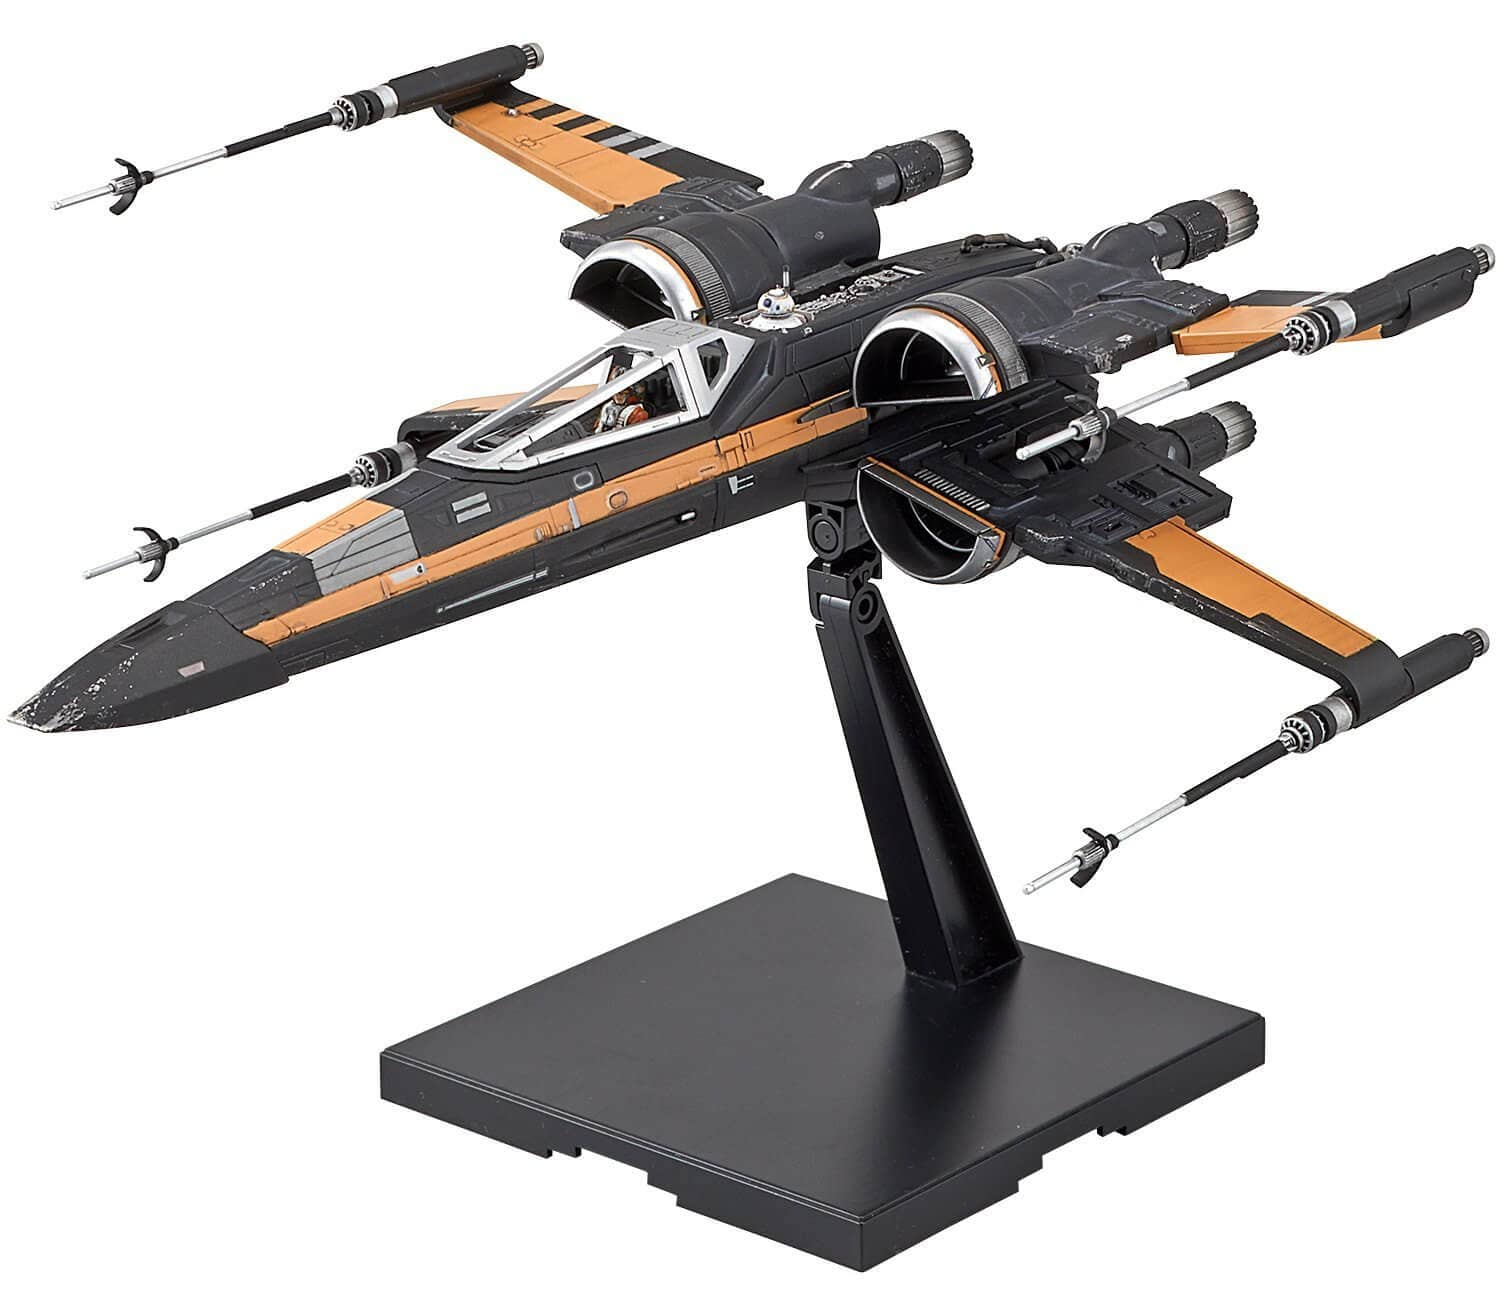 Bandai Poe's Boosted X-Wing Fighter Model Kit